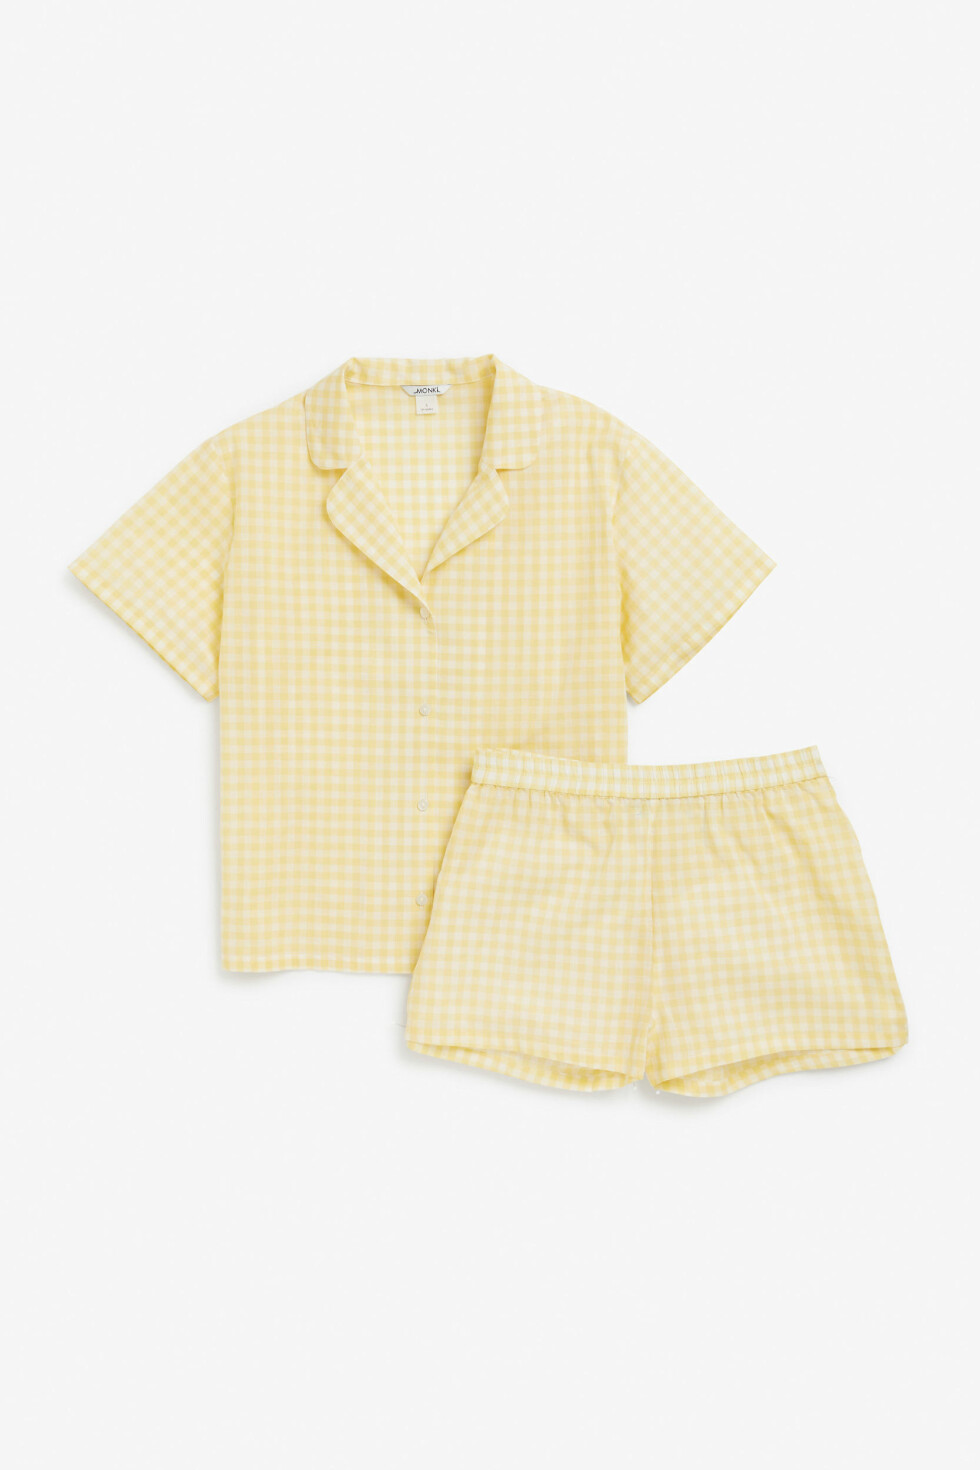 Pysj fra Monki |250,-| https://www.monki.com/en_sek/clothing/underwear/sleepwear/product.matching-pyjamas-freshly-squeezed/check-it-out.0552131001.html